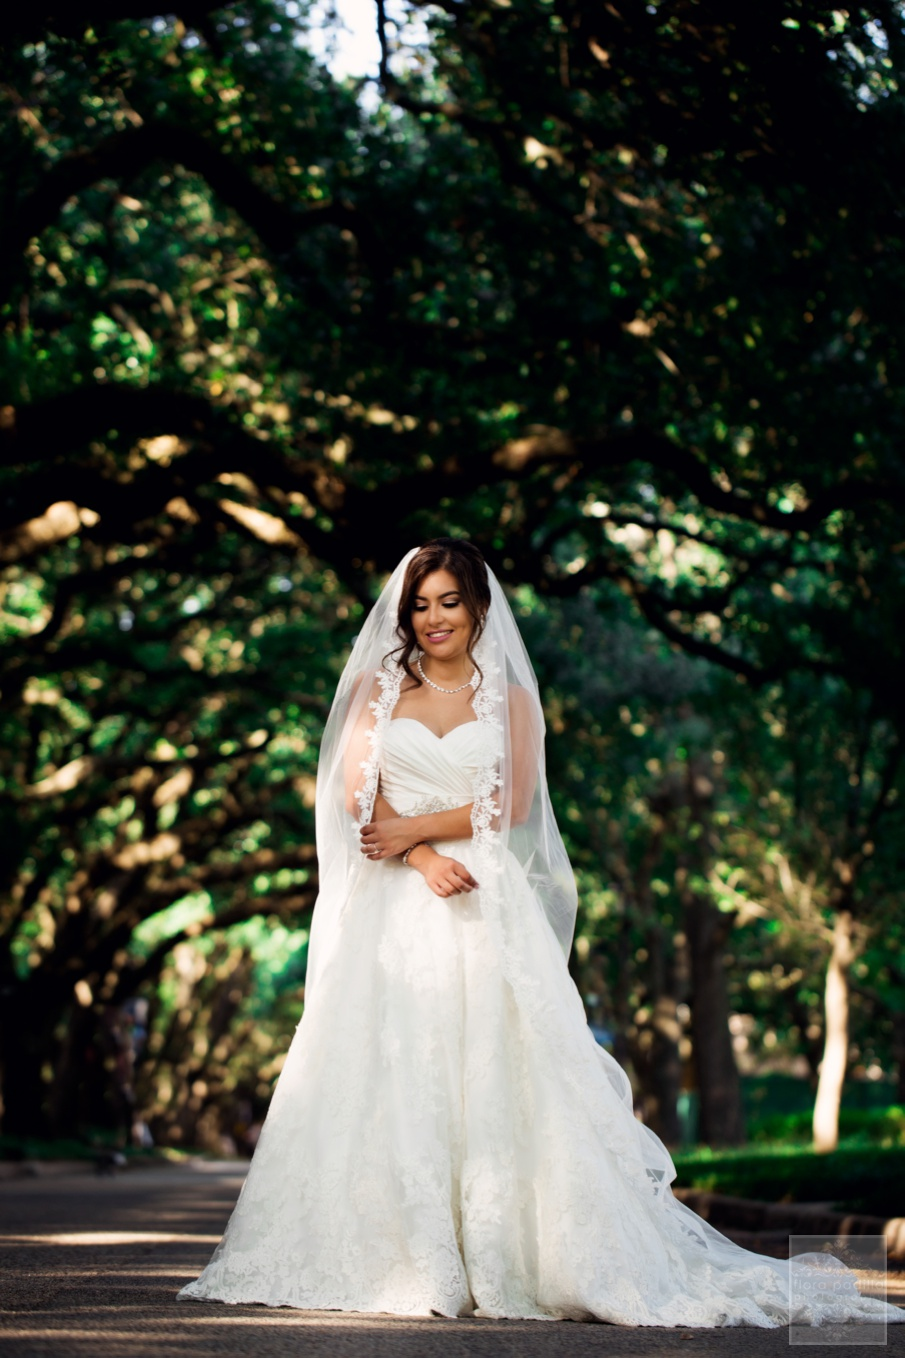 houston-texas-wedding-photographer-houston-bridal-portraits-dukessa